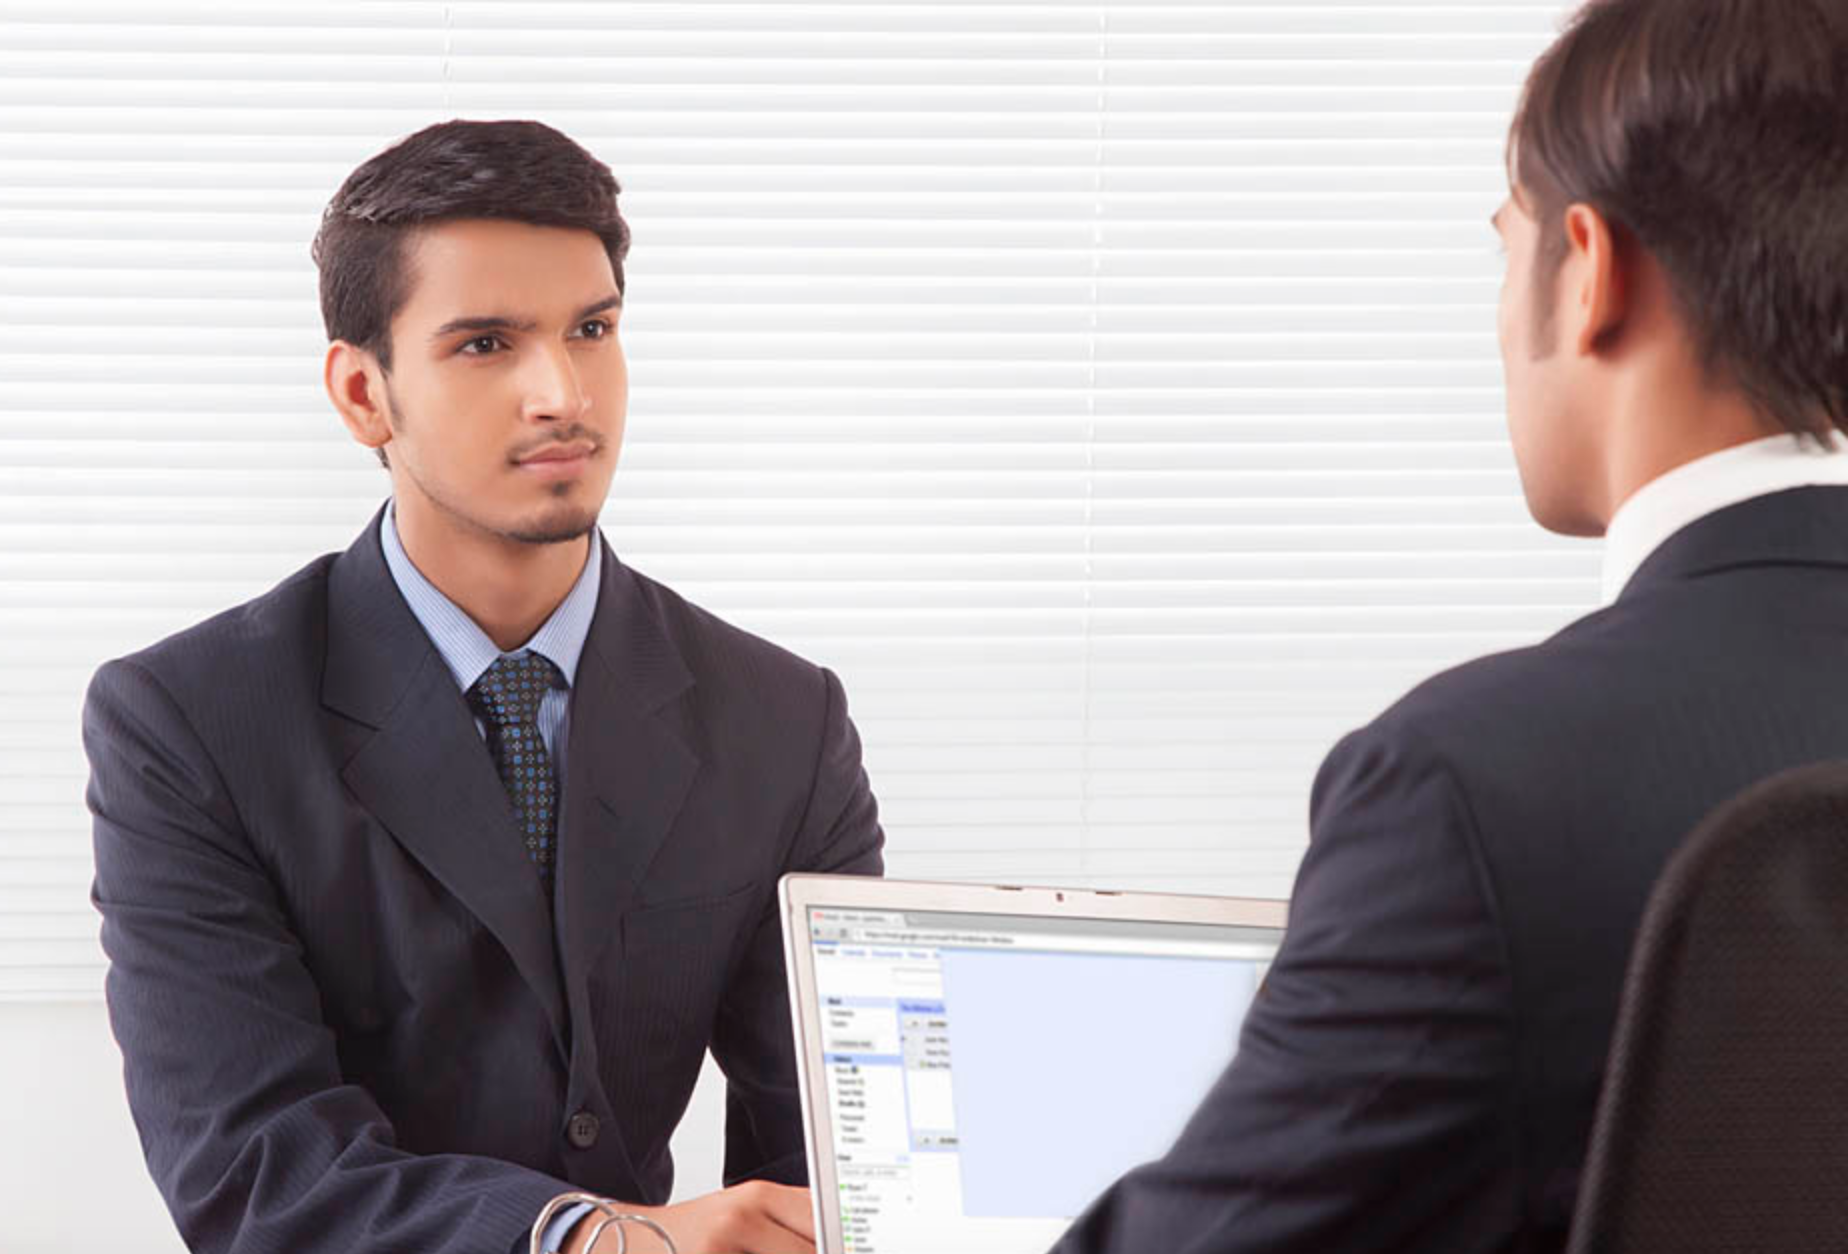 Placement support - We bring recruiters to the academy and set up interviews for internships and permanent positions for our students. We help our students through all stages of job search from resume building to interview preparations and more.